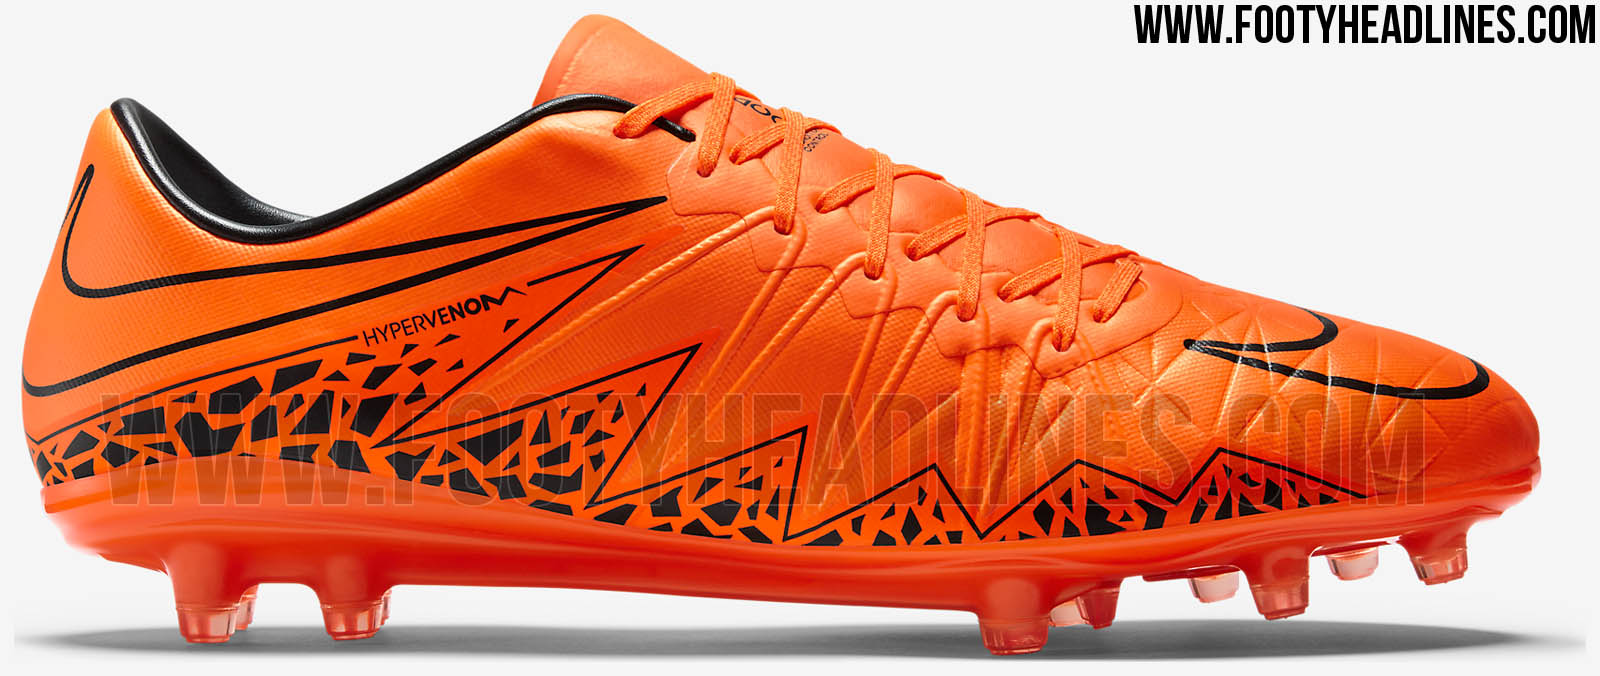 orange nike hypervenom phinish 2015 boots released footy. Black Bedroom Furniture Sets. Home Design Ideas